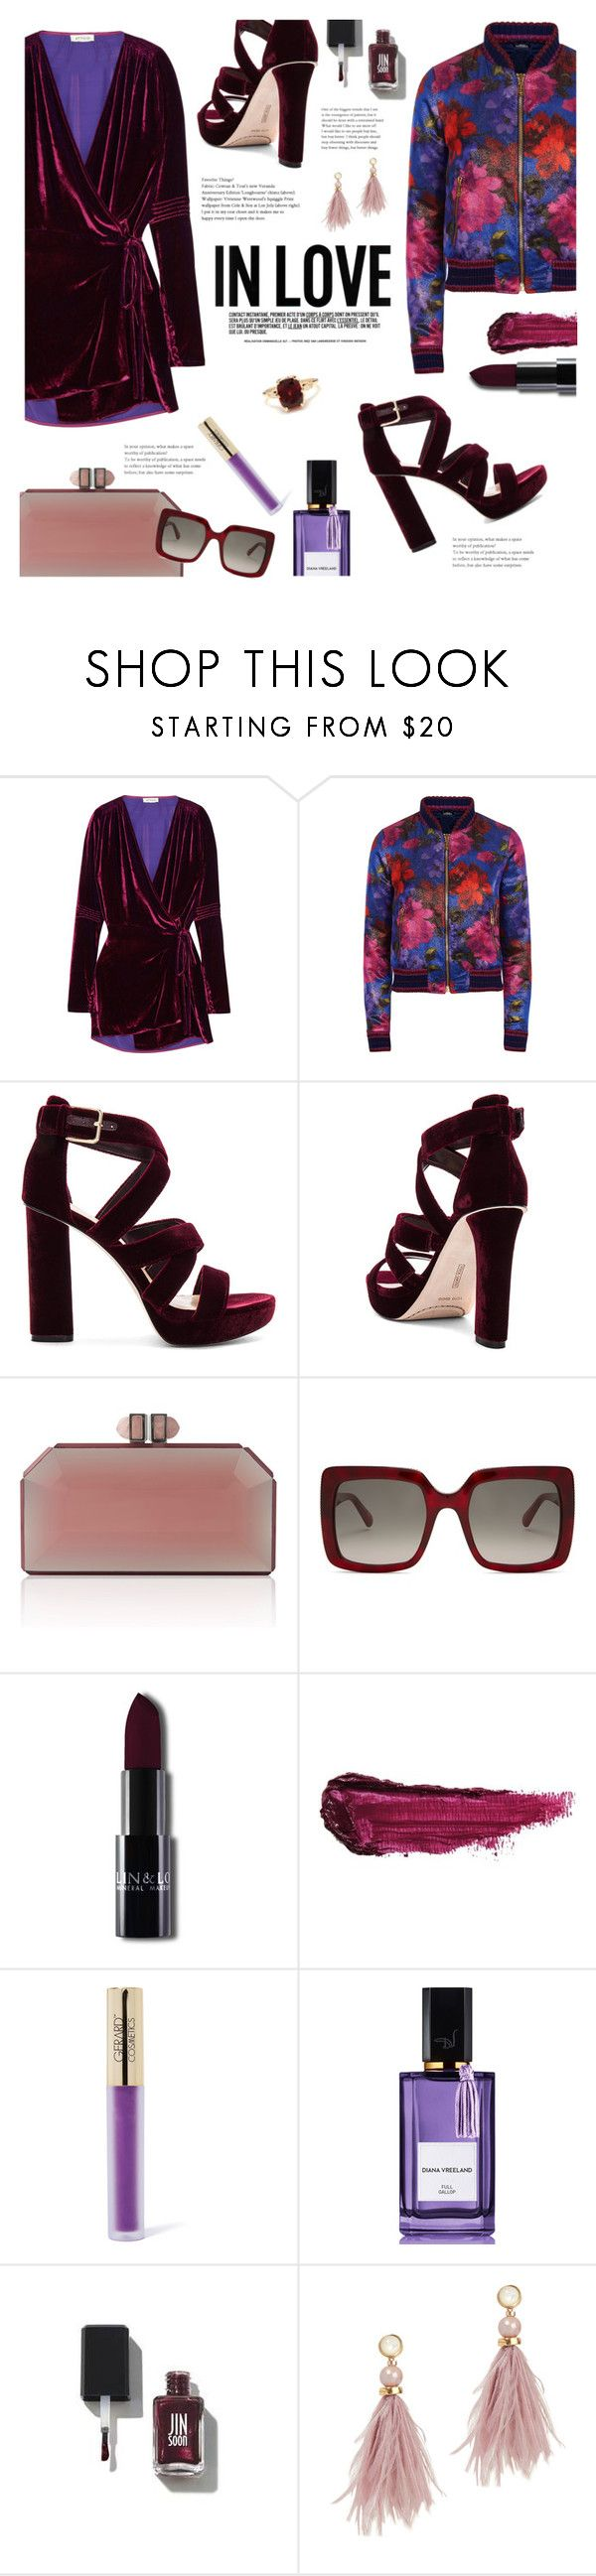 """""""Back in Love"""" by lisalockhart ❤ liked on Polyvore featuring Attico, La Perla, Vince Camuto, STELLA McCARTNEY, By Terry, Gerard Cosmetics, Diana Vreeland, Chanel, Lizzie Fortunato and Other"""